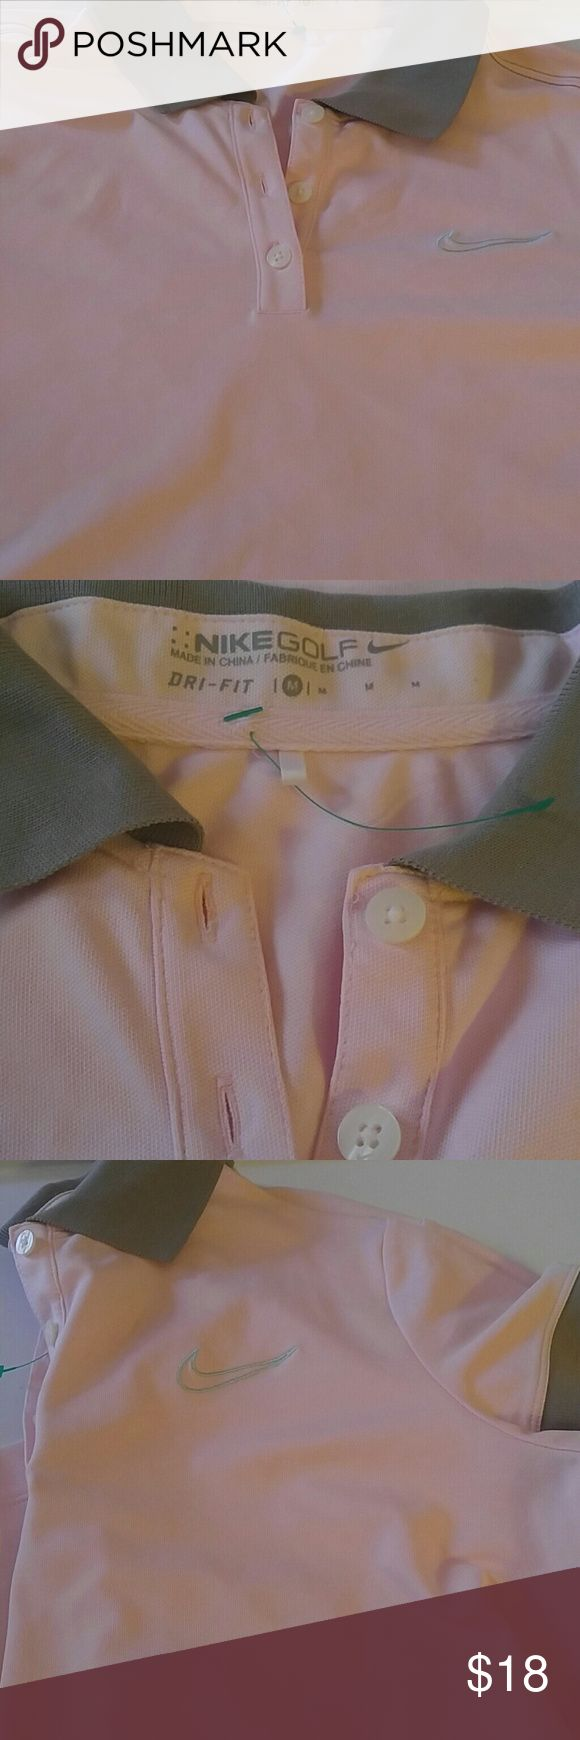 """Nike Women's Golf Top Size M Pink Gray 19"""" pit to pit 23.5"""" long pink and Gray nice shirt for golf or any day wear. Nike Tops Tees - Short Sleeve"""